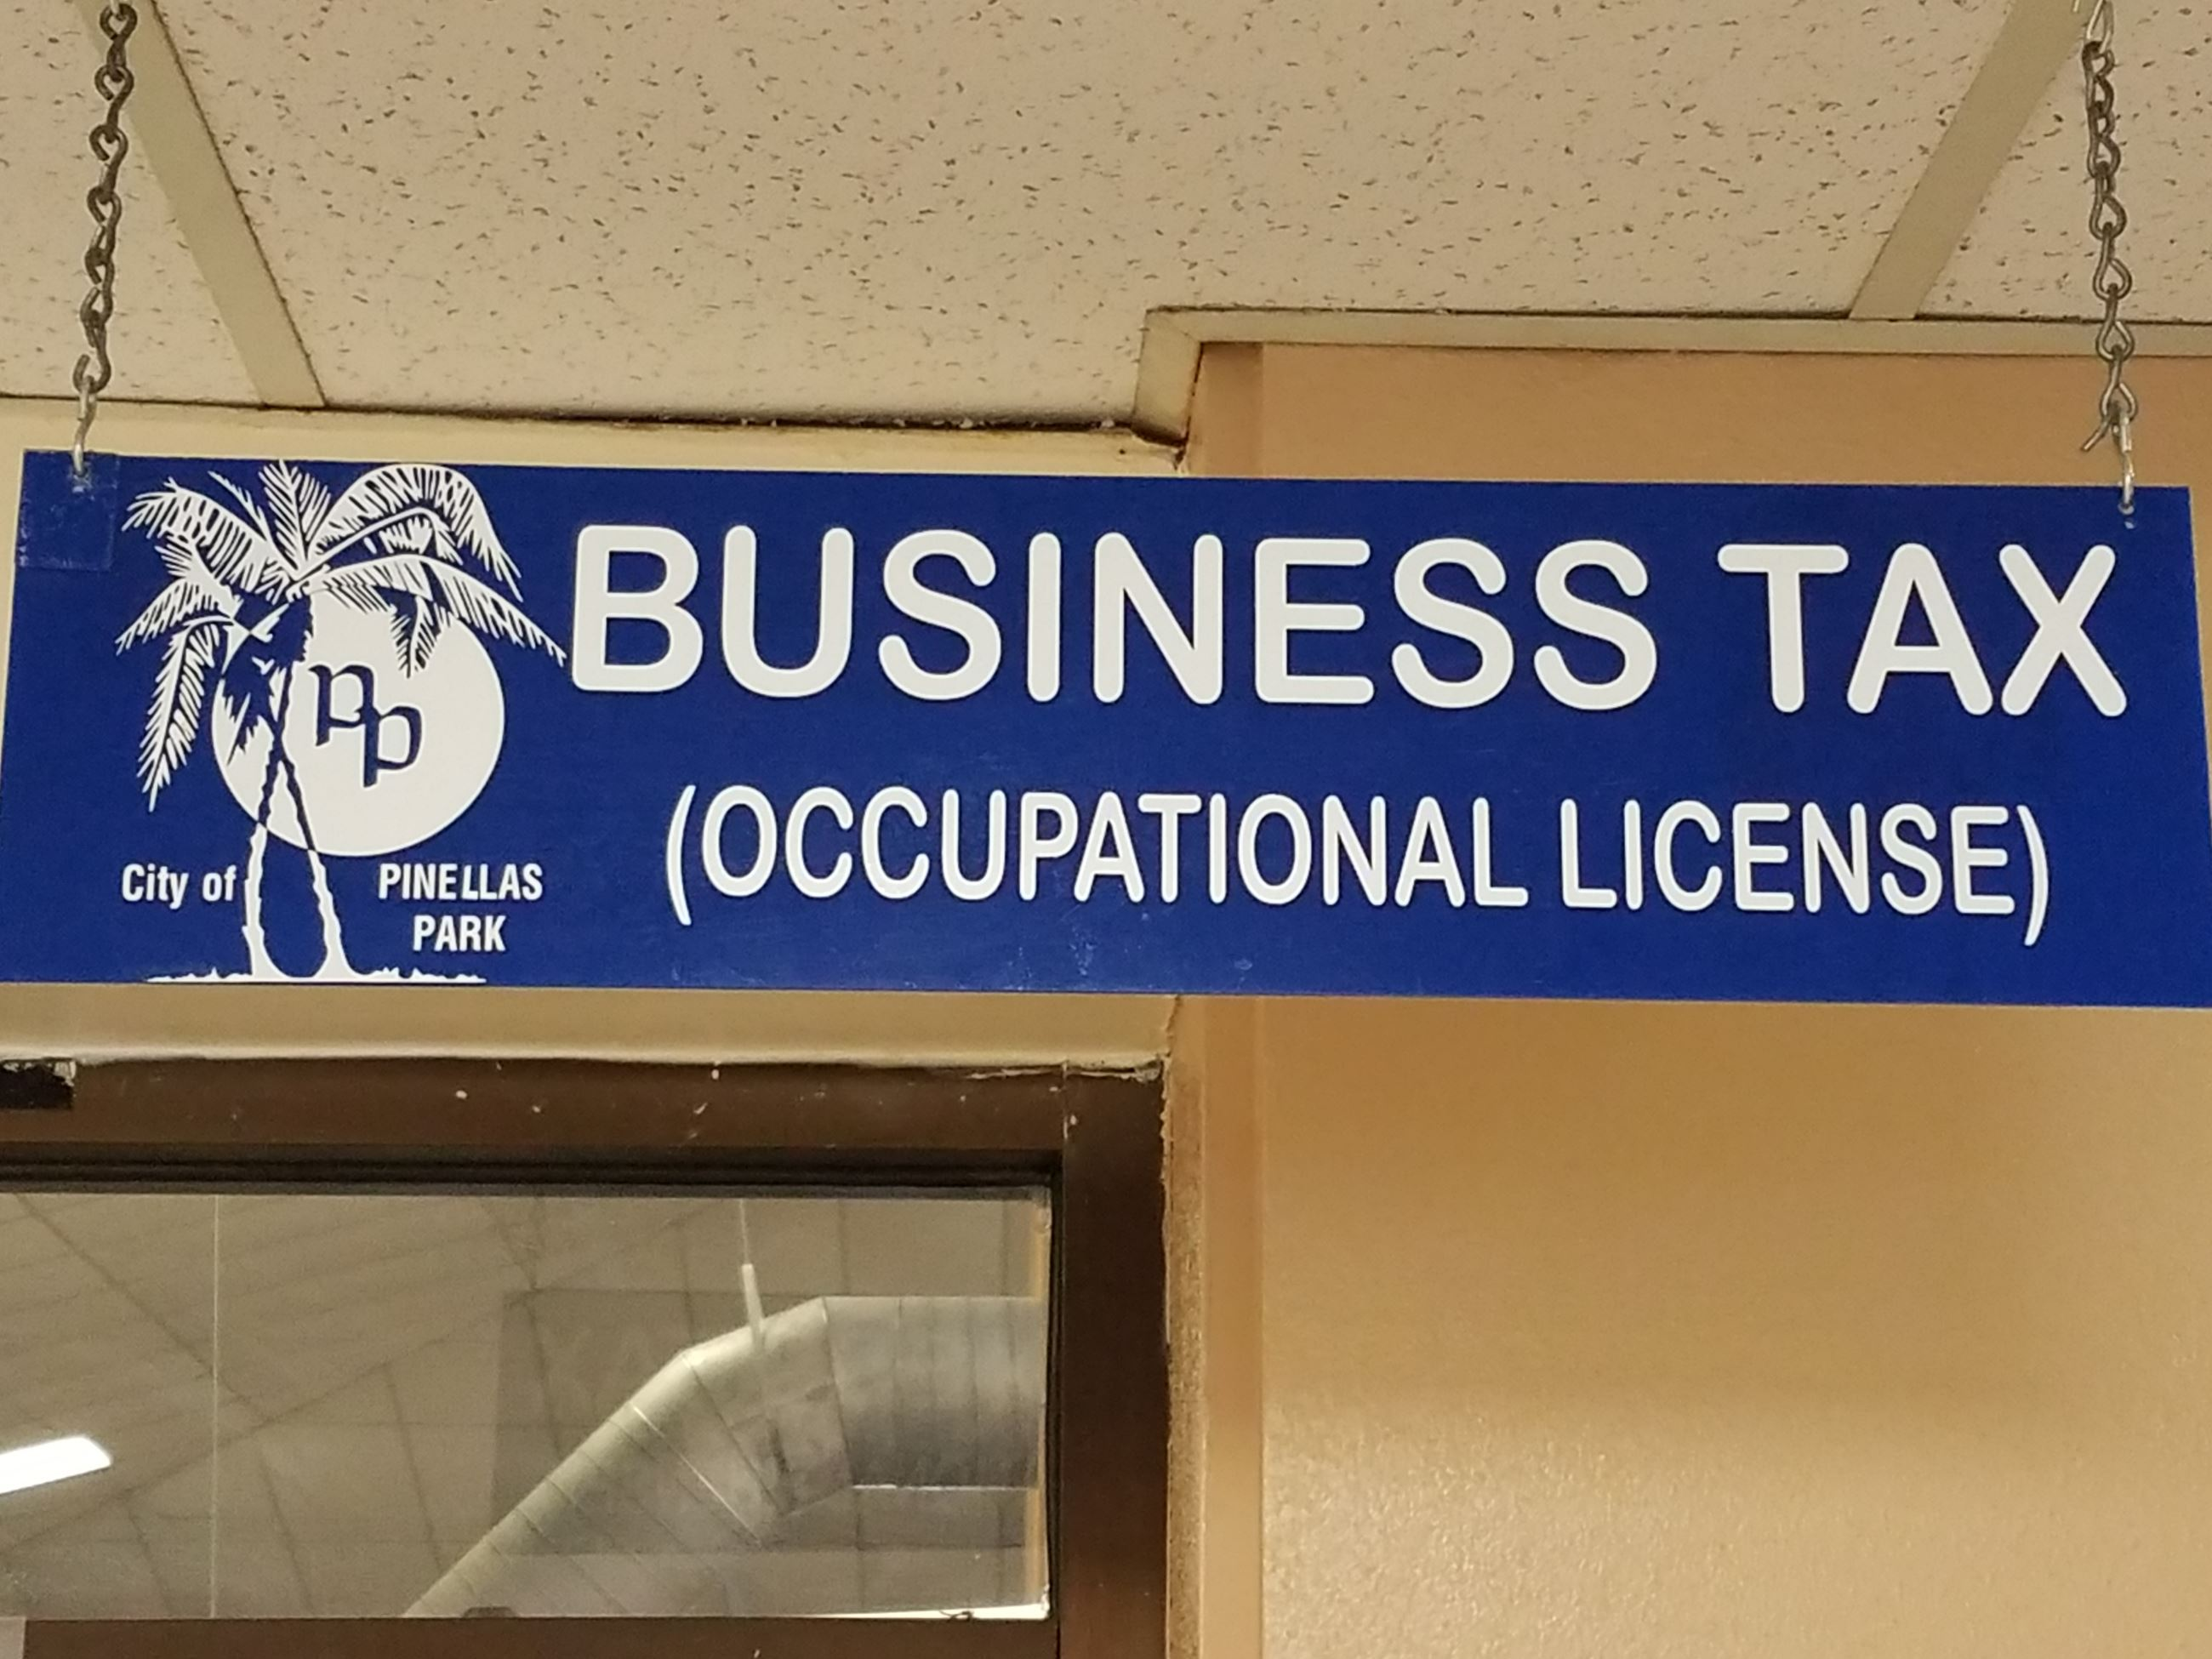 Business Tax (Occupational License) Office Sign